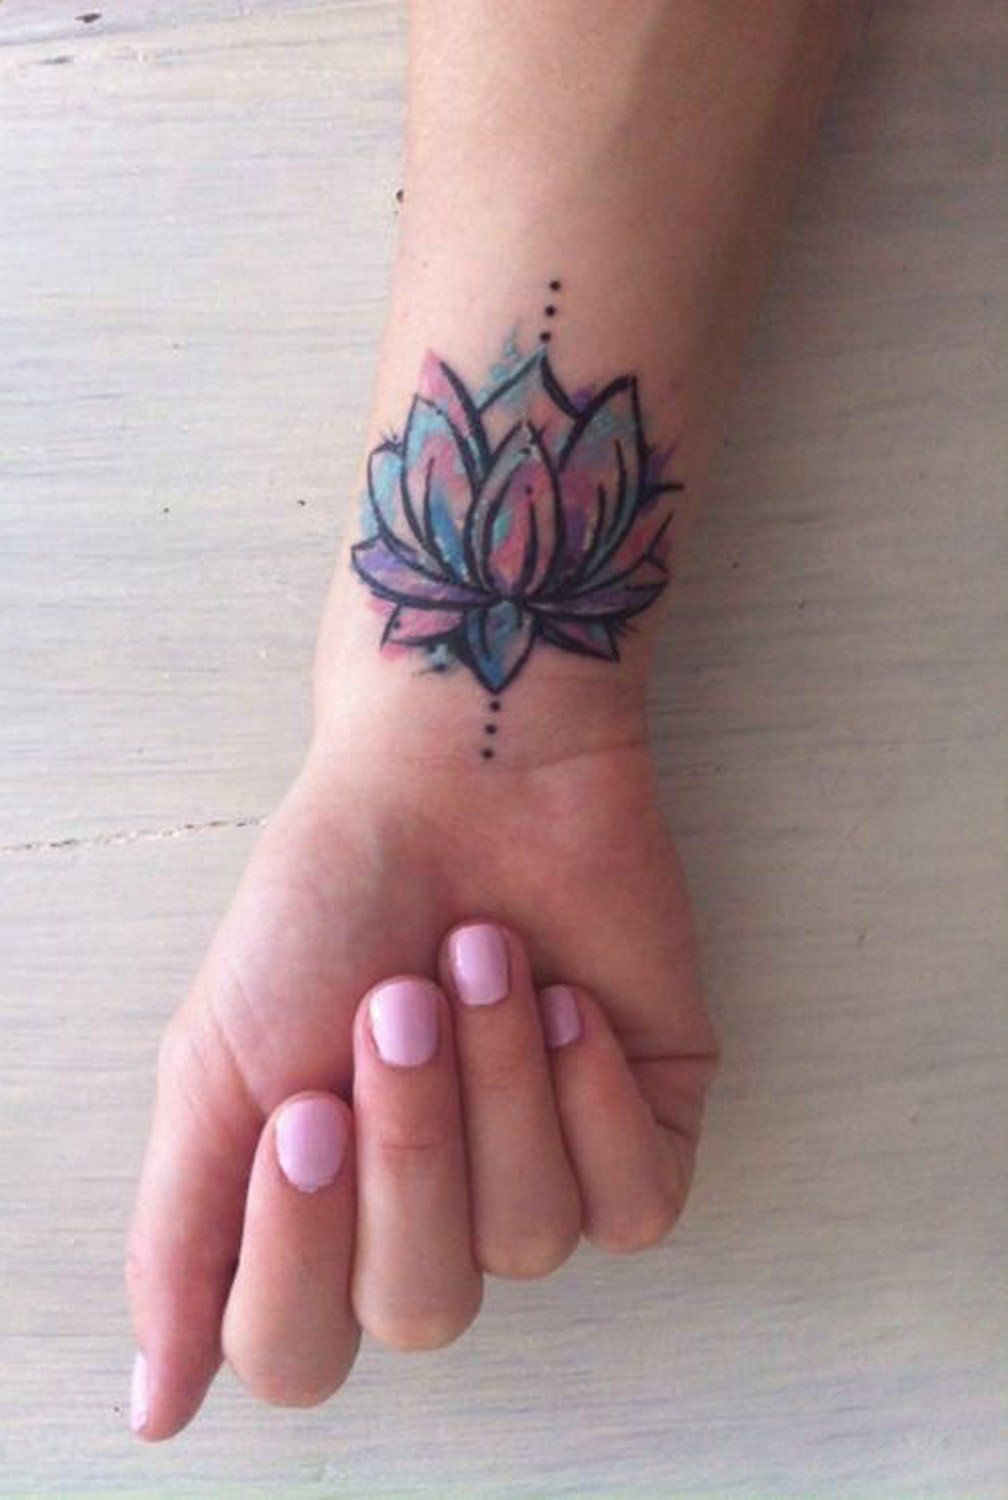 Pin by michelle pacheco on Tats Wrist tattoos for women